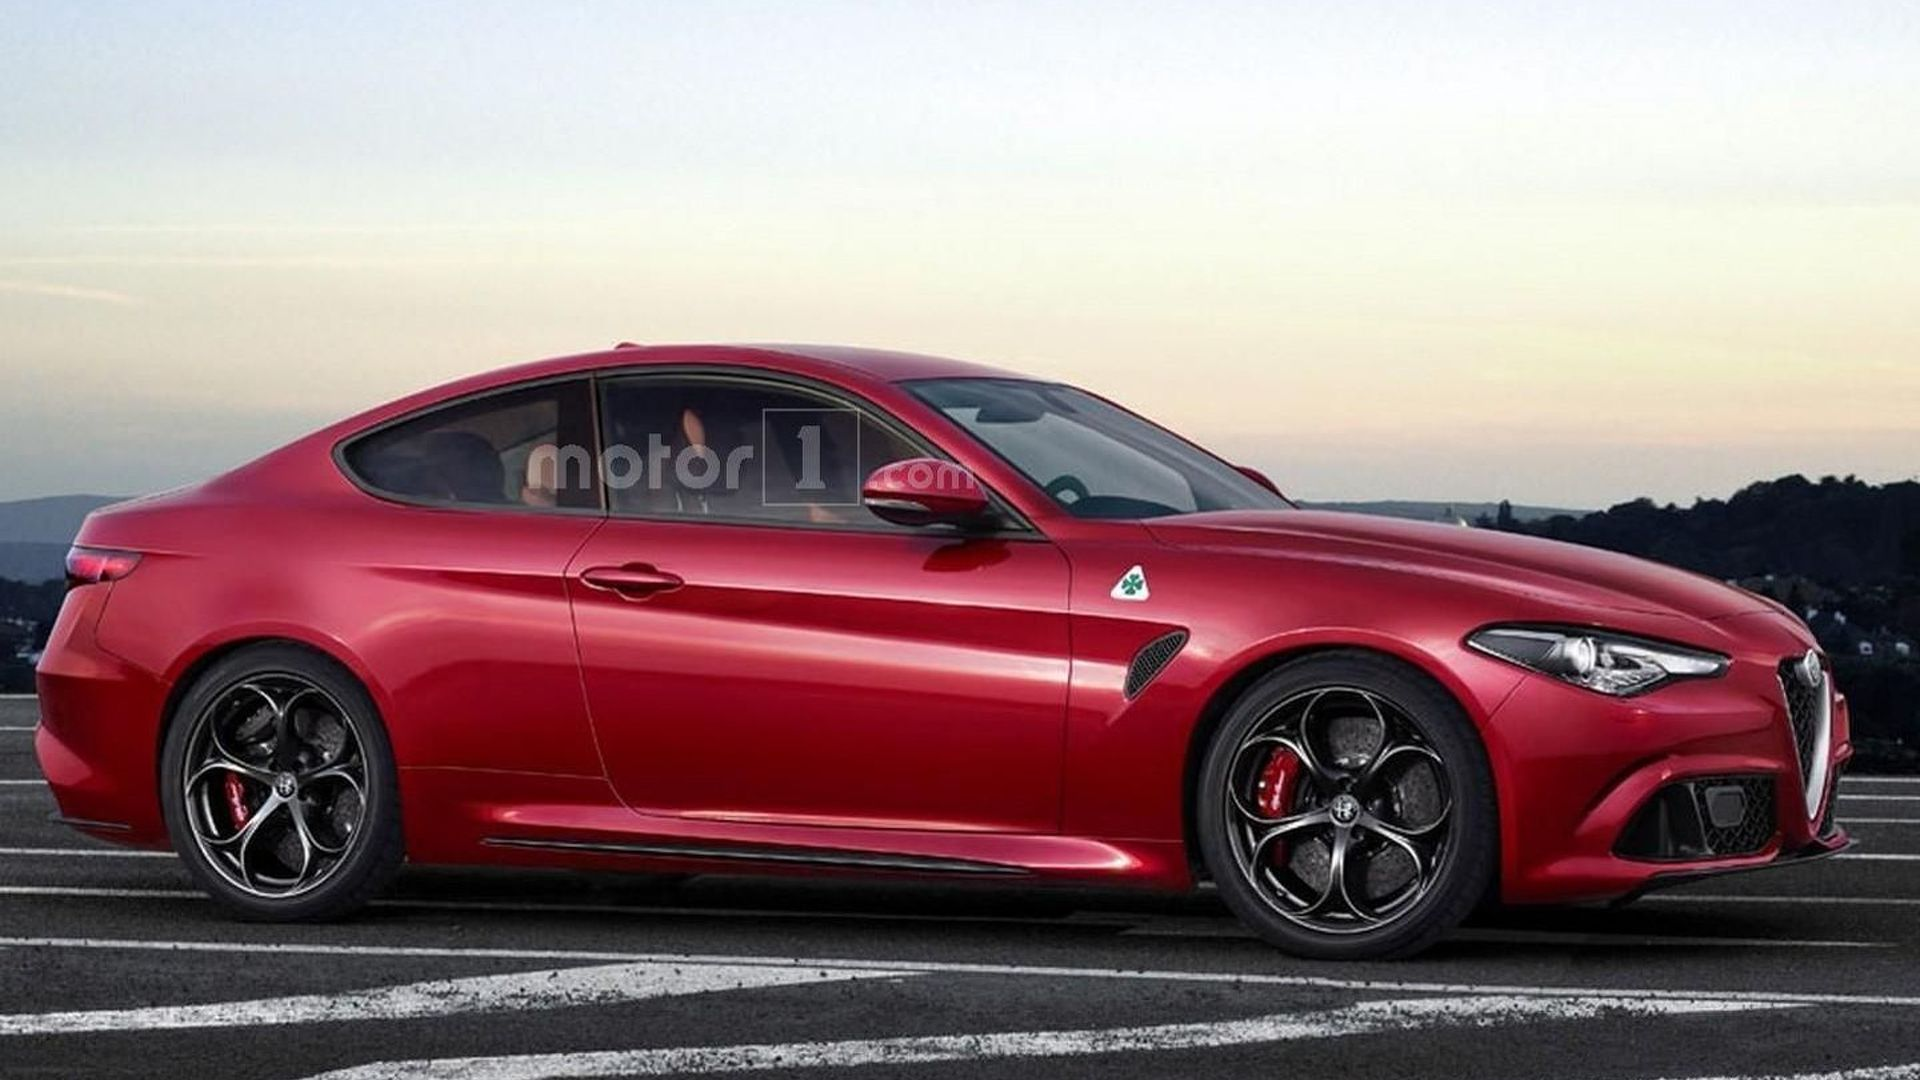 Alfa Romeo Giulia Coupe Quadrifoglio Is Only A Speculative Render in addition Fiat Multipla 1998 furthermore Suzuki X90 1996 also Wbr7glm likewise 4hNN1R. on alfa romeo weird